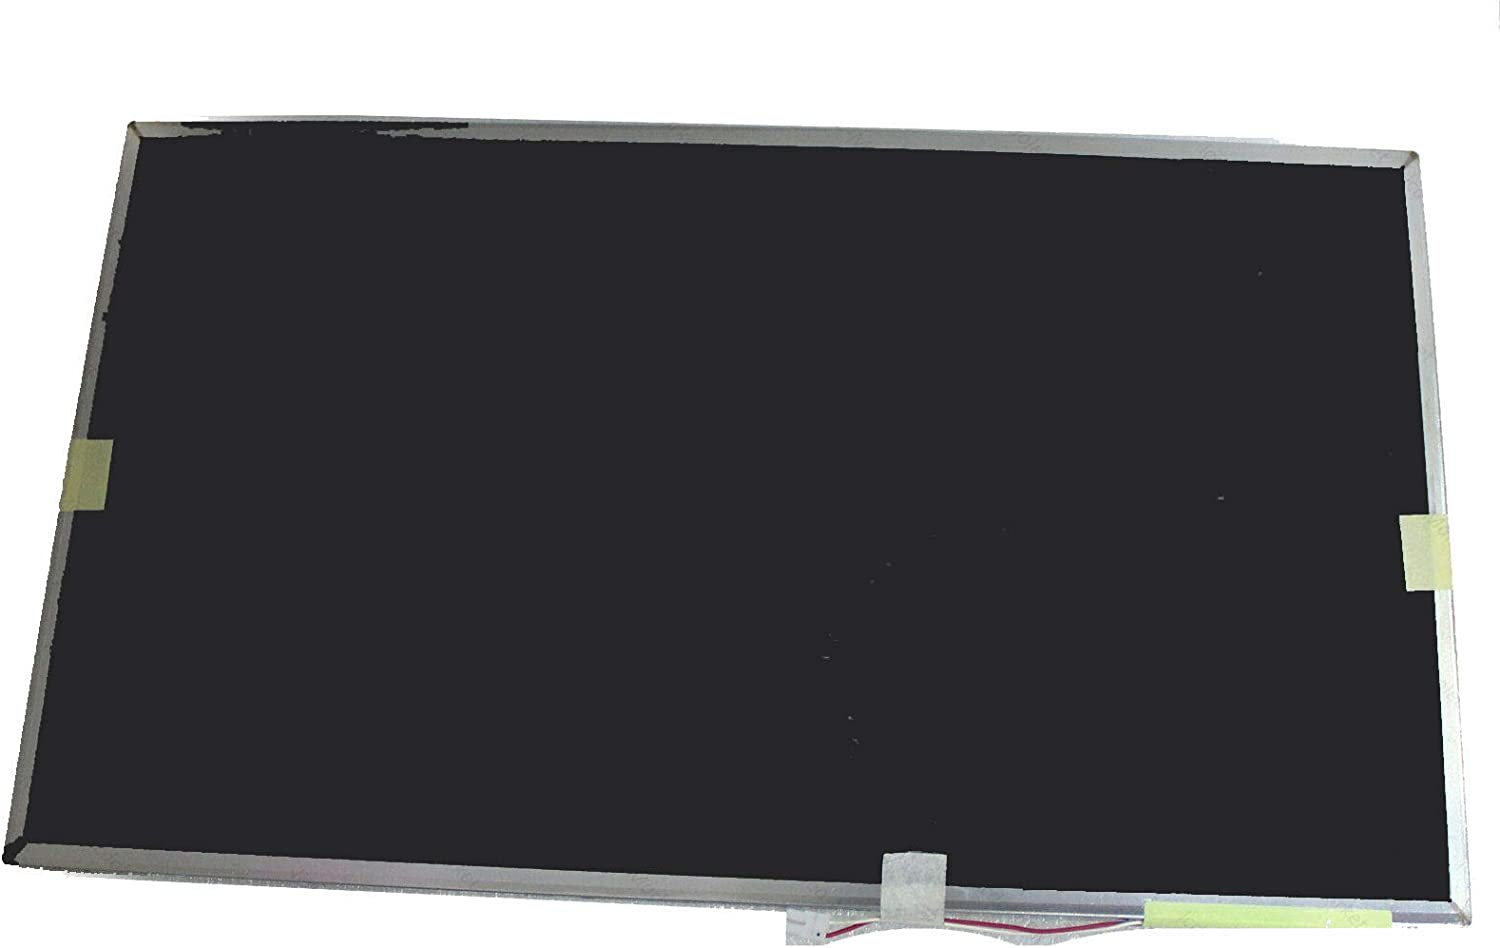 "JCD 15.6"" 1366 x 768 CCFL LCD Screen Laptop Display Panel for ACER Aspire 5532 Replacement"